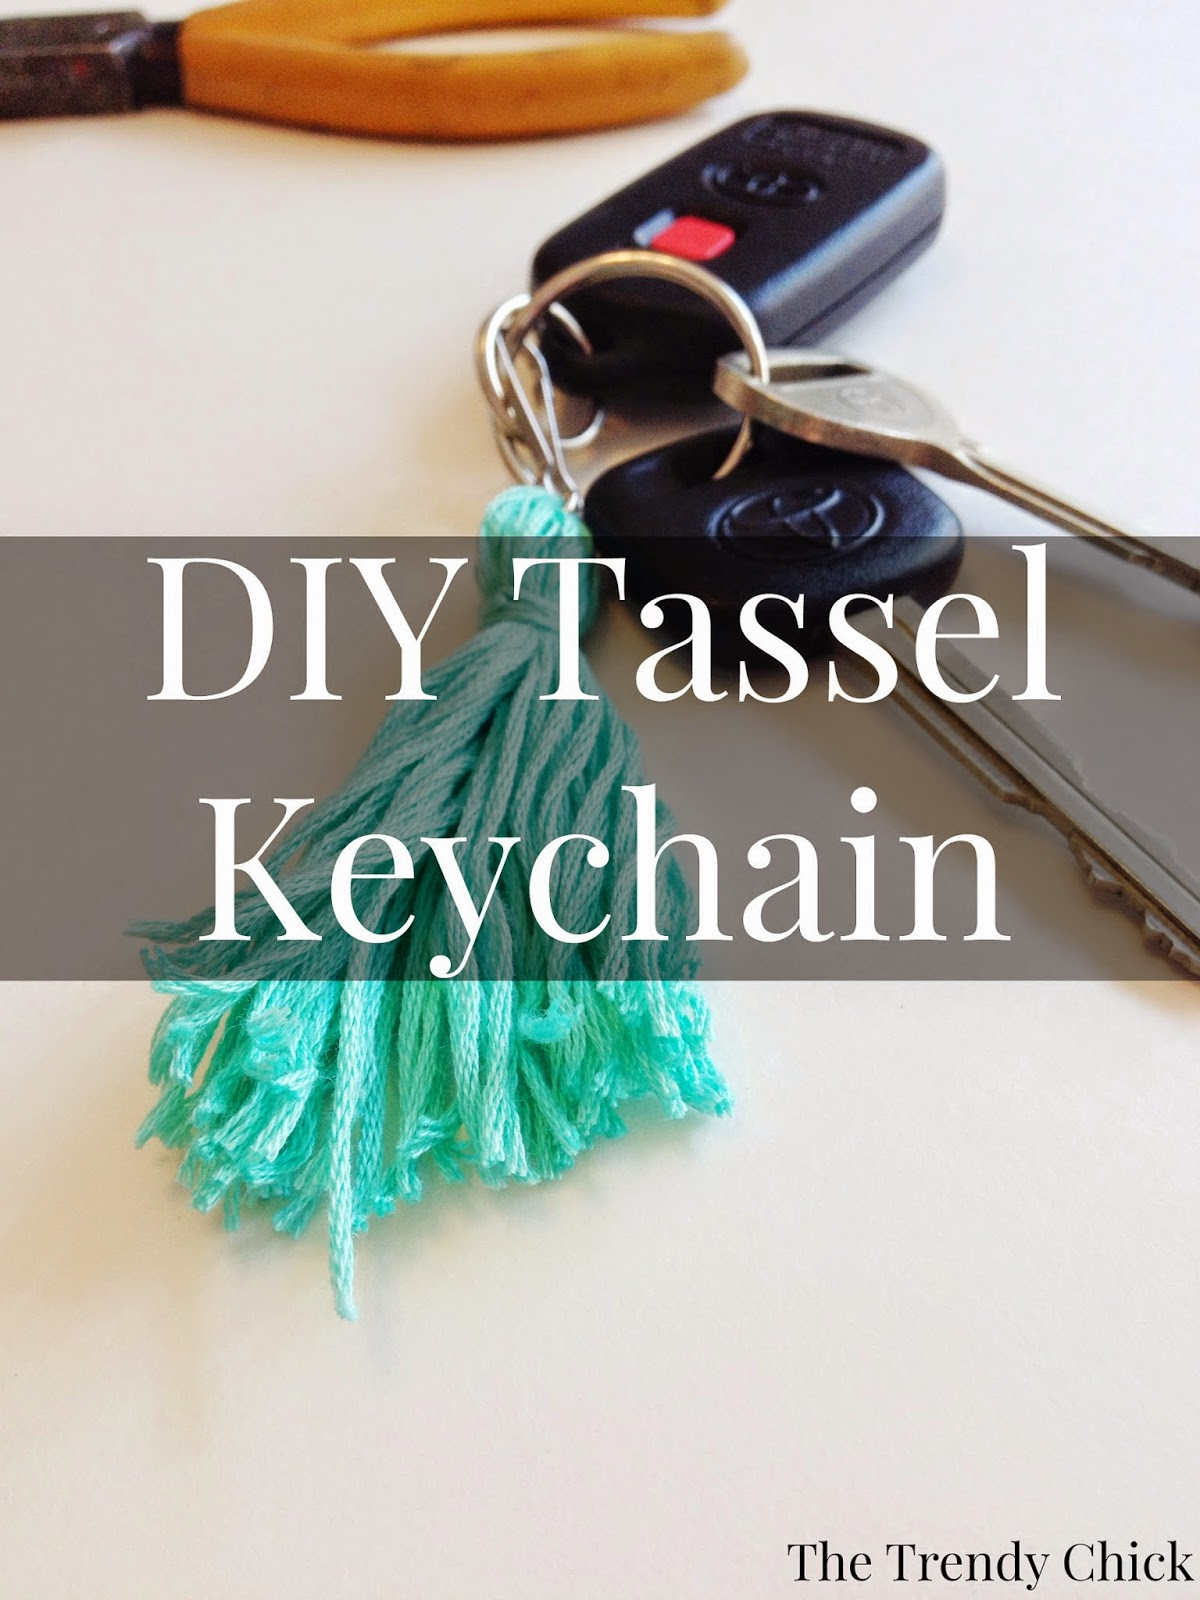 DIY Tassel Keychain + Necklace